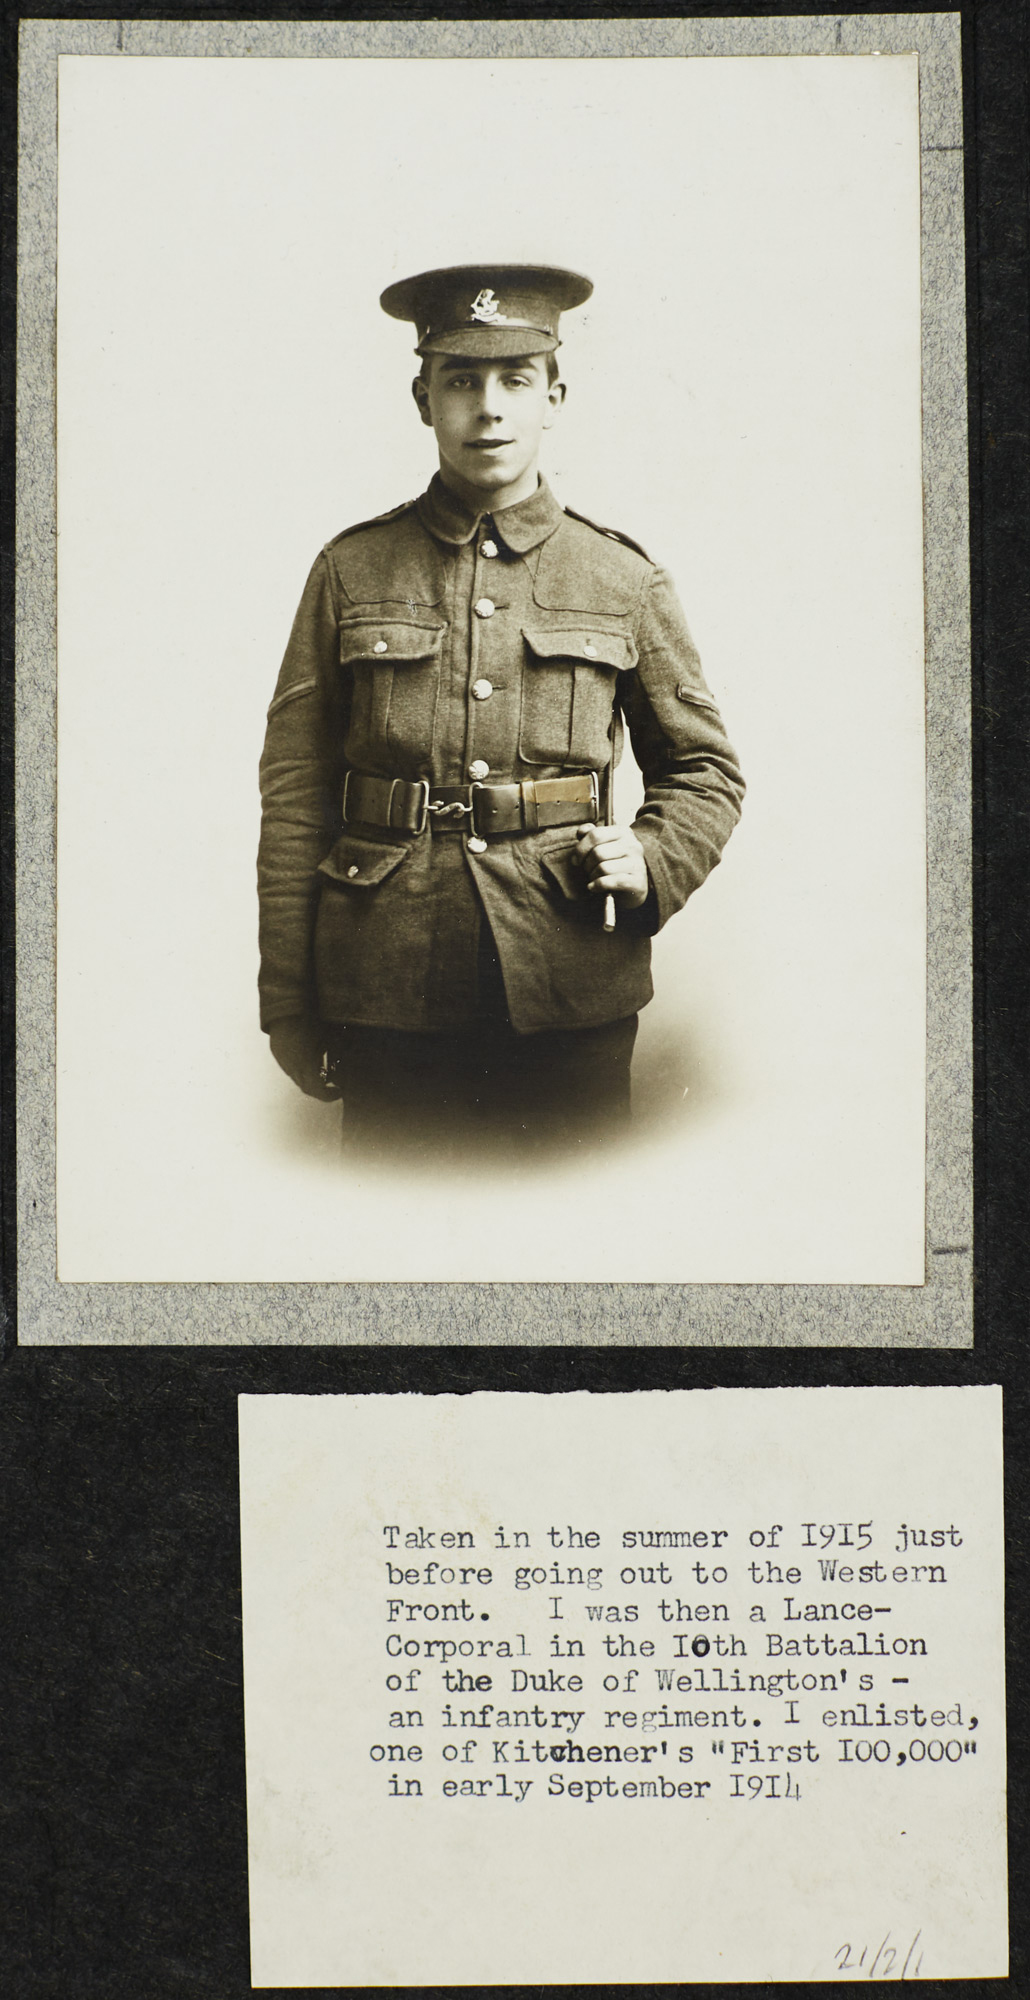 Photograph of J B Priestley as a Lance Corporal, 1915